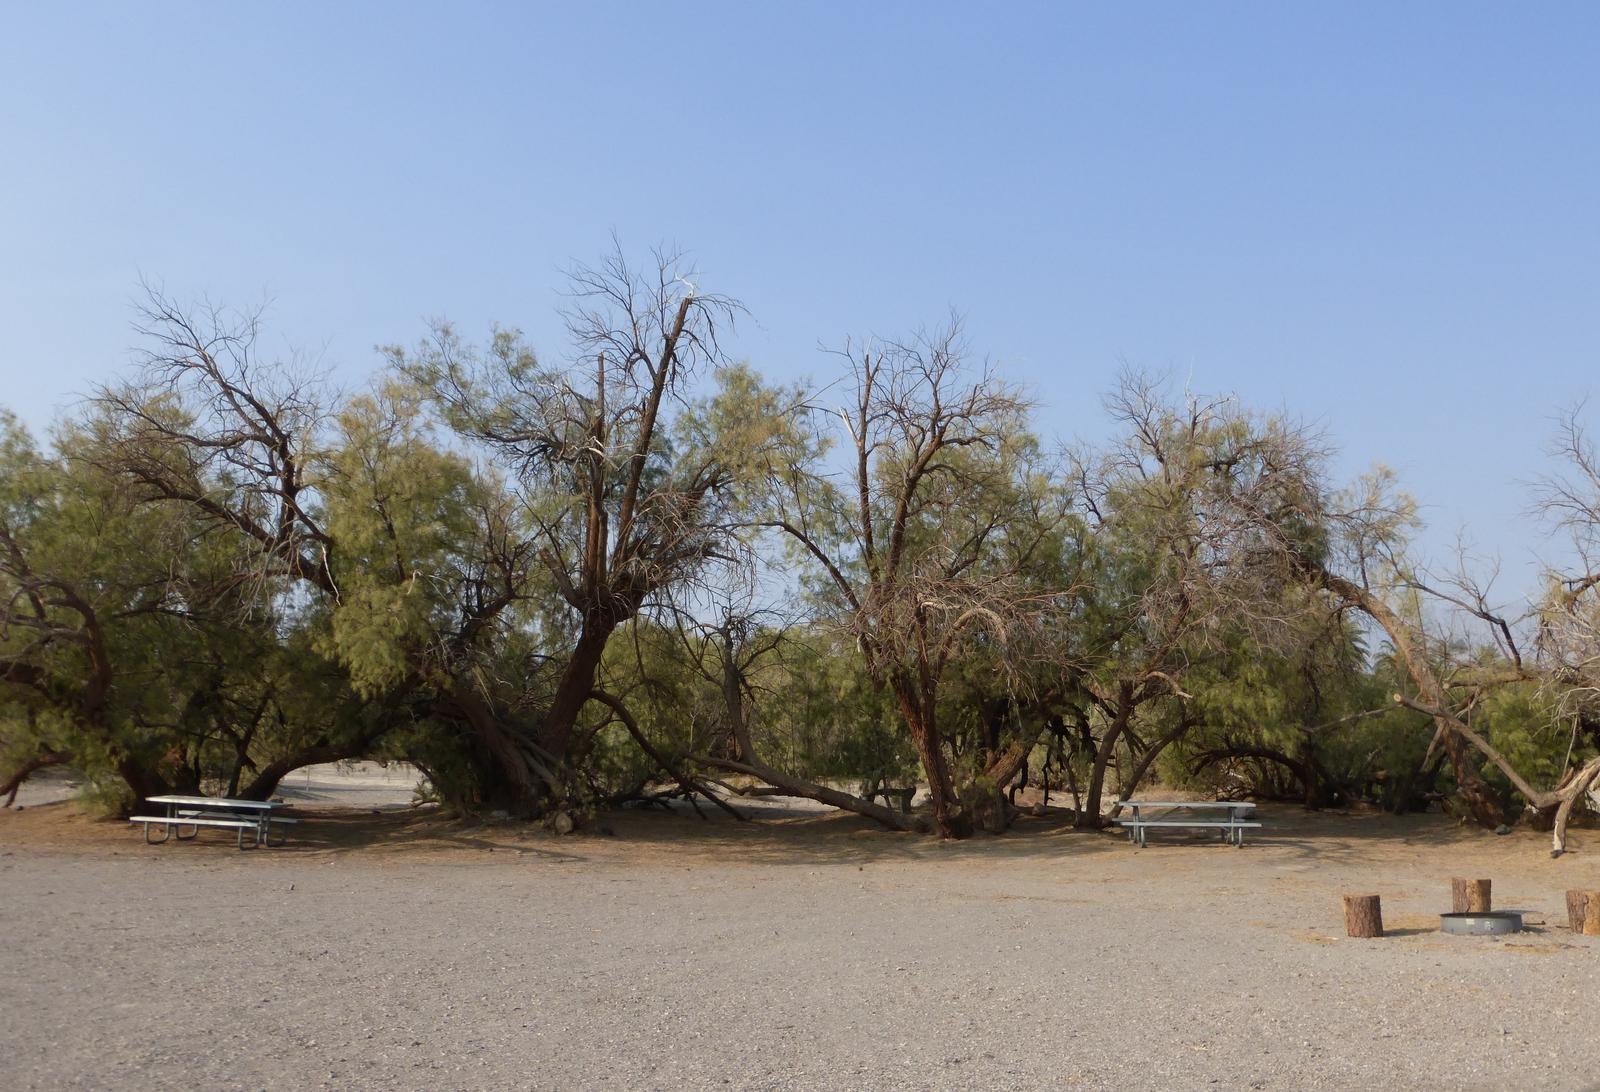 Furnace Creek Campground tent only group site #5.